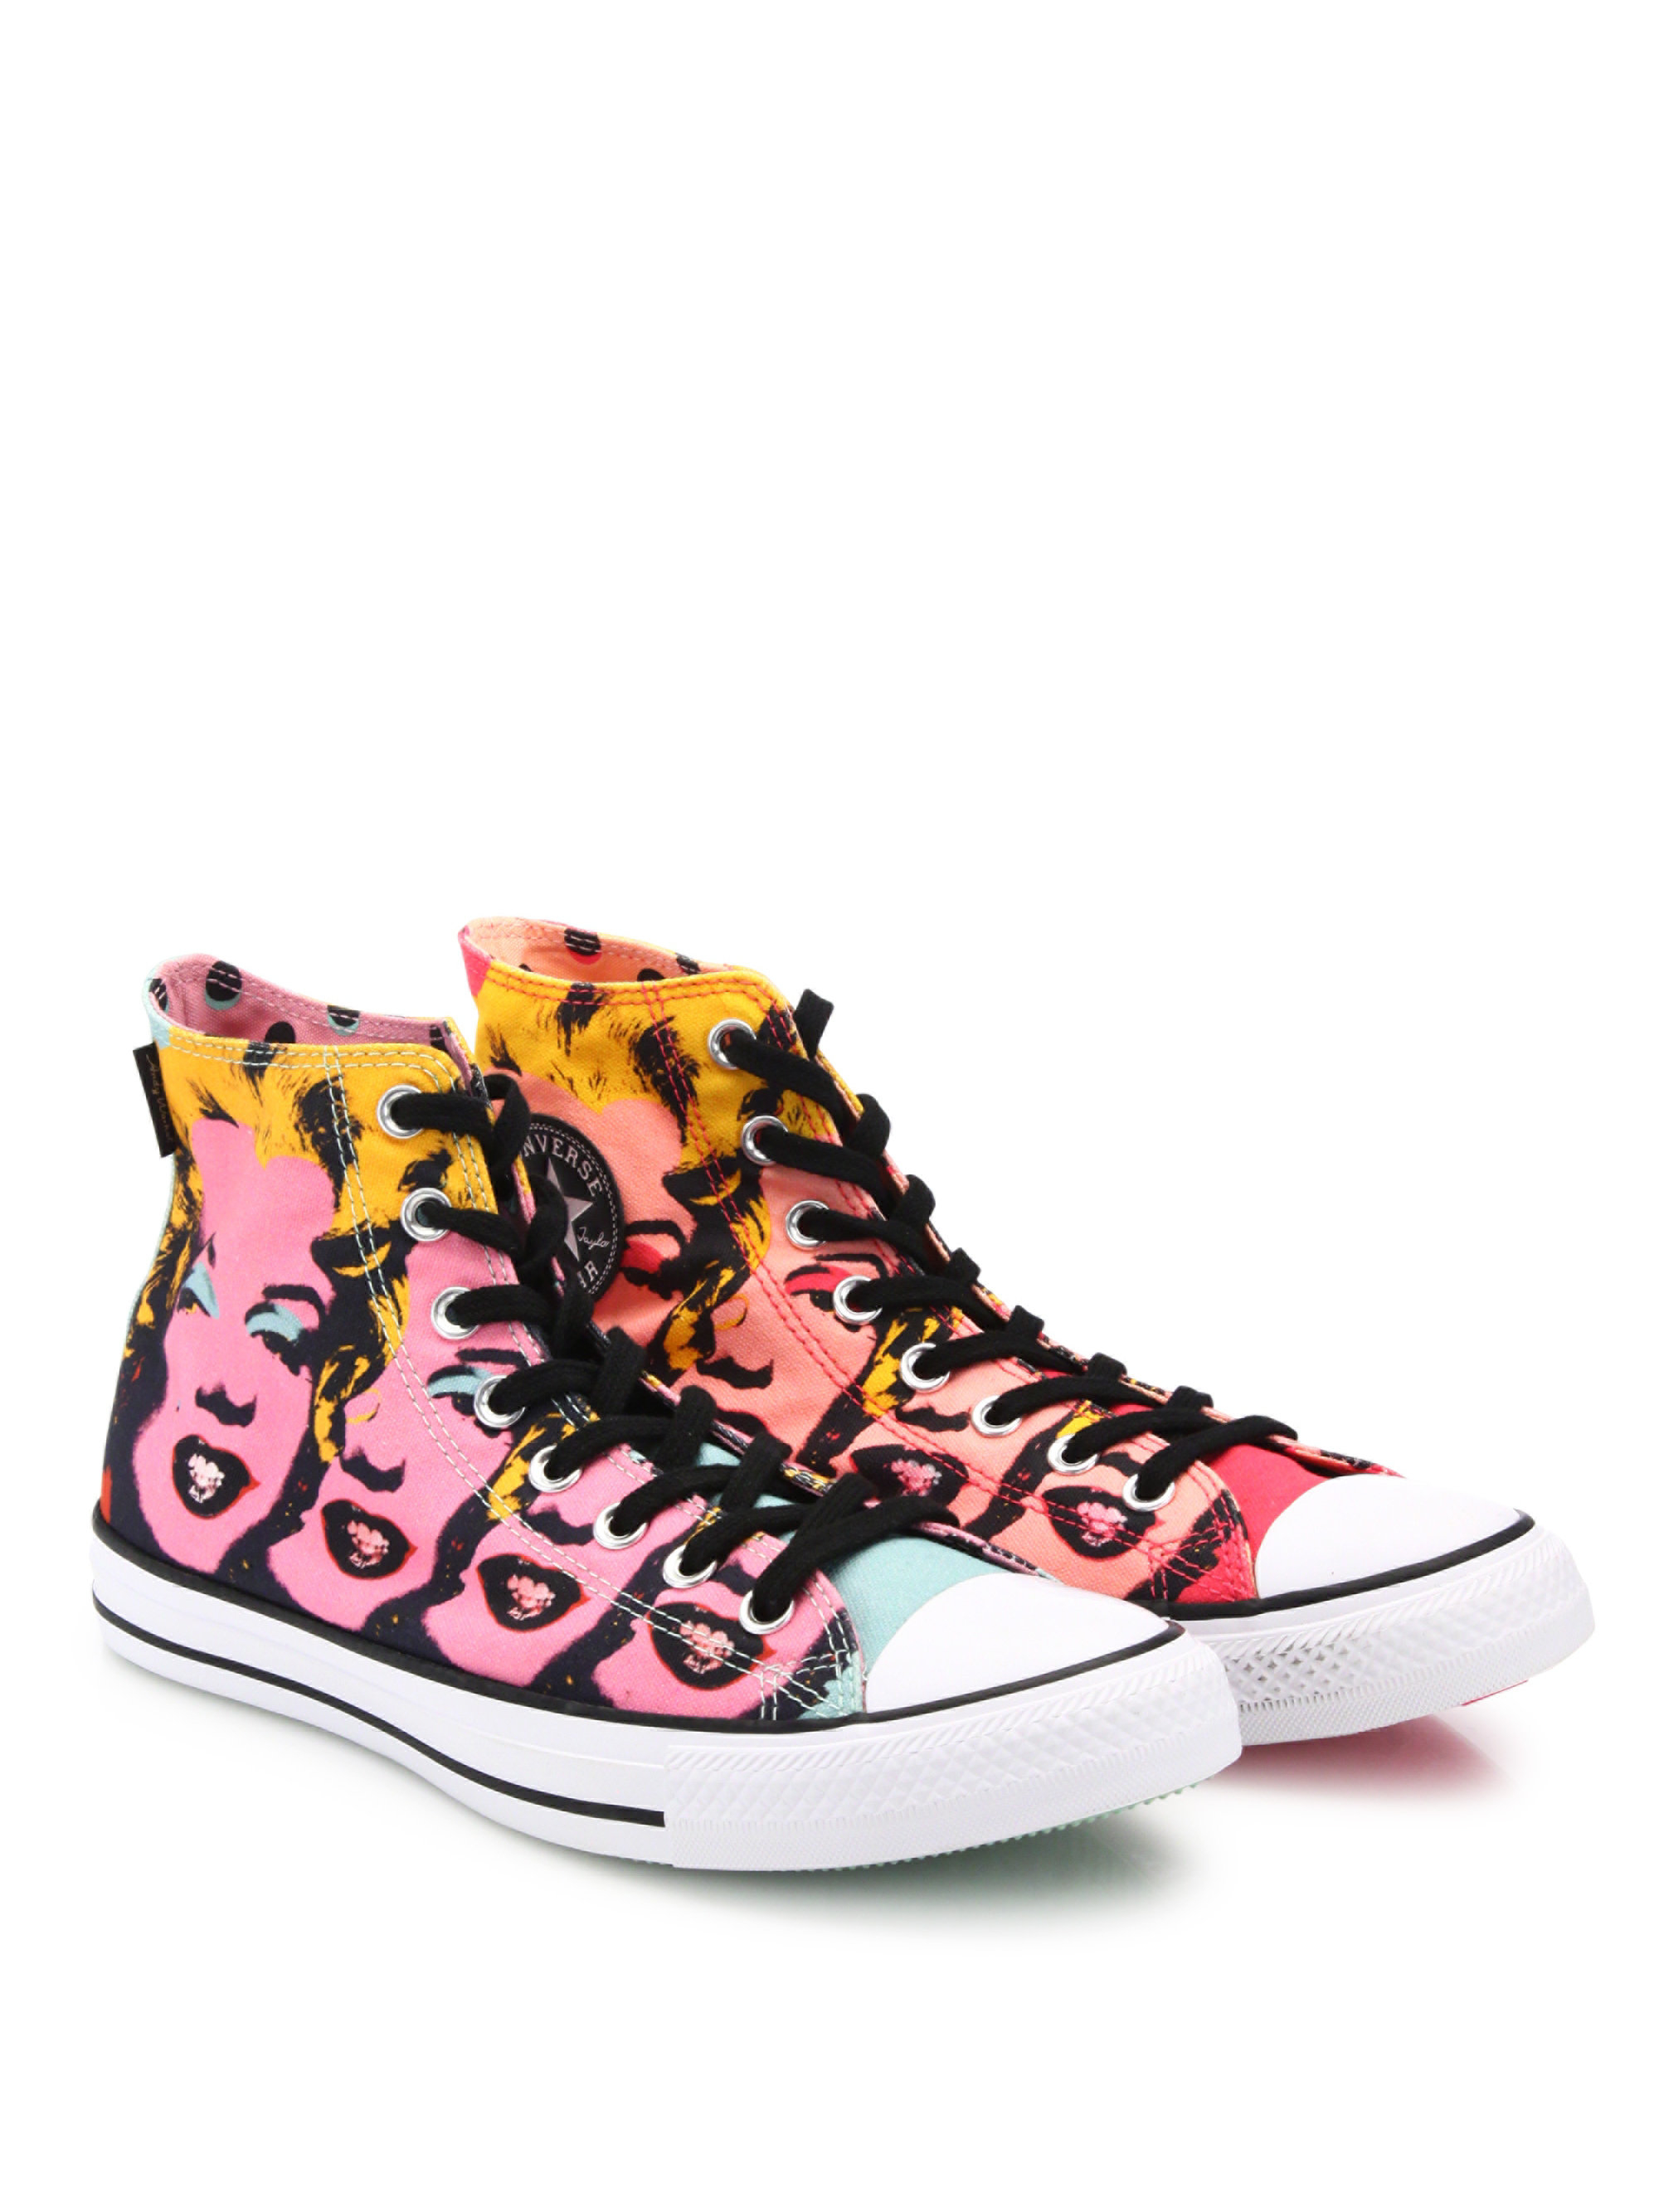 d3517dcfde116f Lyst - Converse Chuck Taylor Marilyn Monroe High-top Sneakers